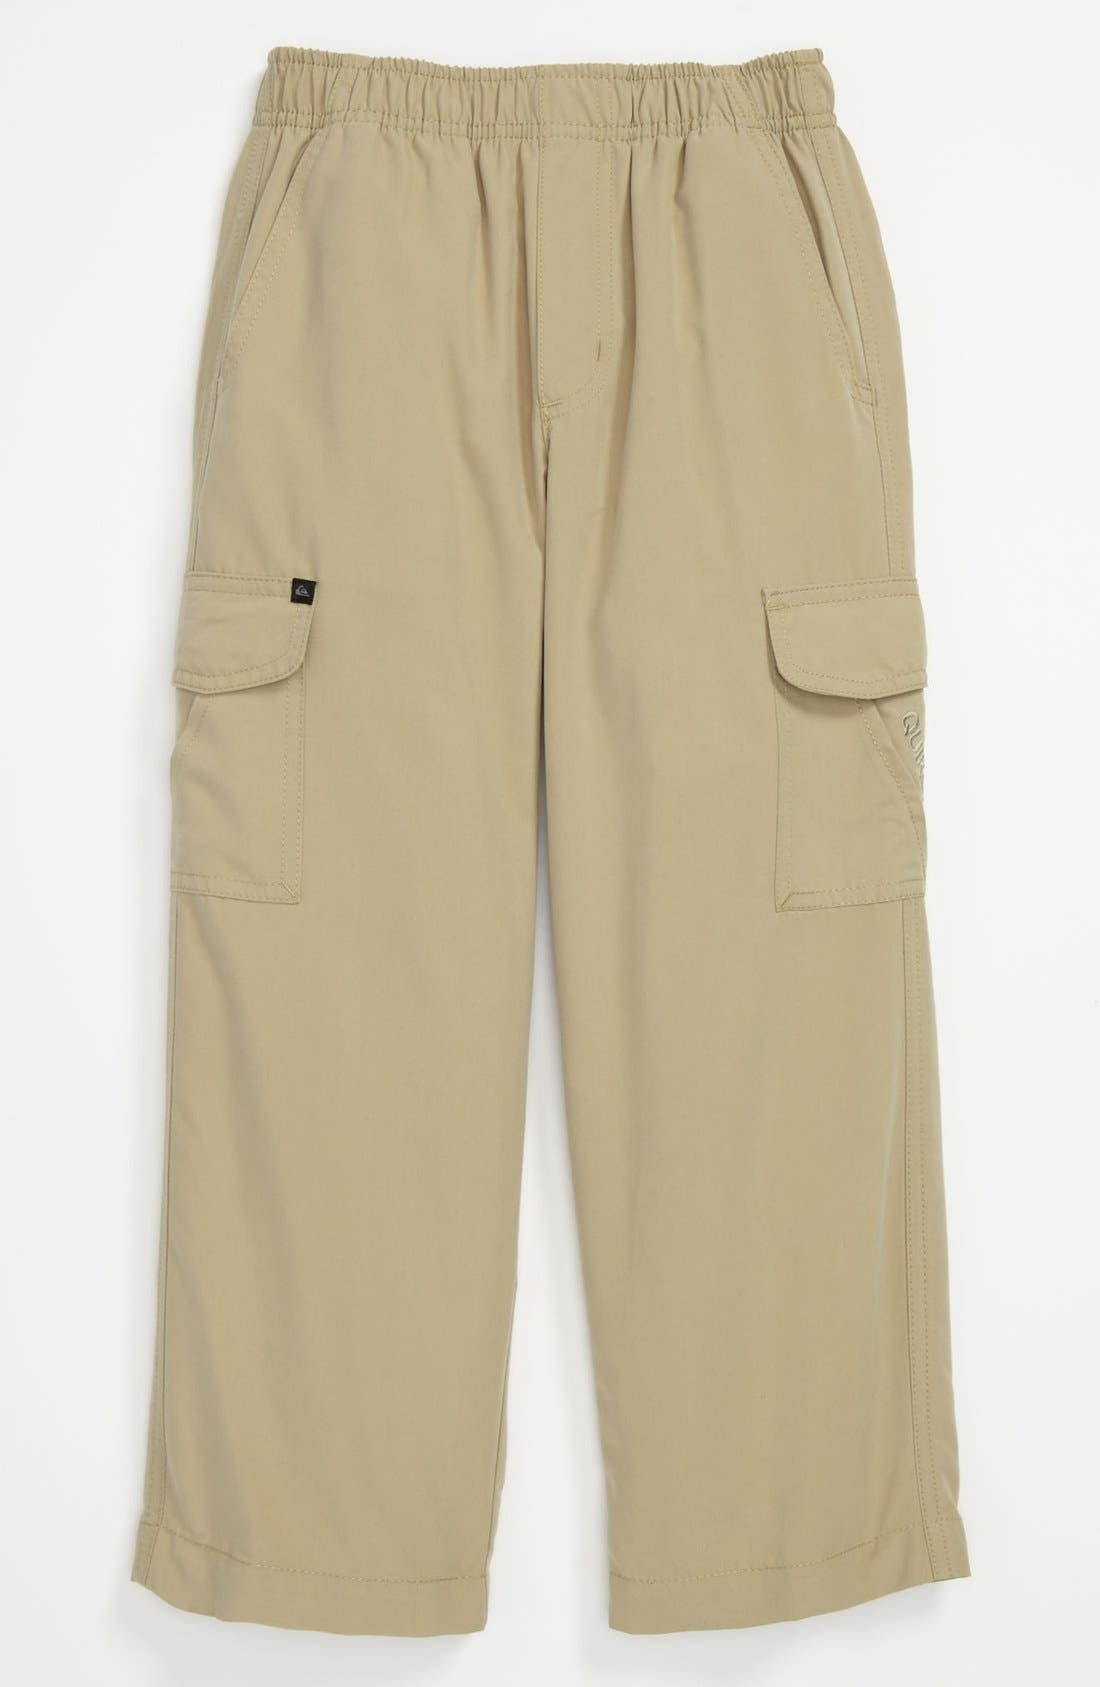 Alternate Image 1 Selected - Quiksilver 'Kamotion' Pants (Little Boys)